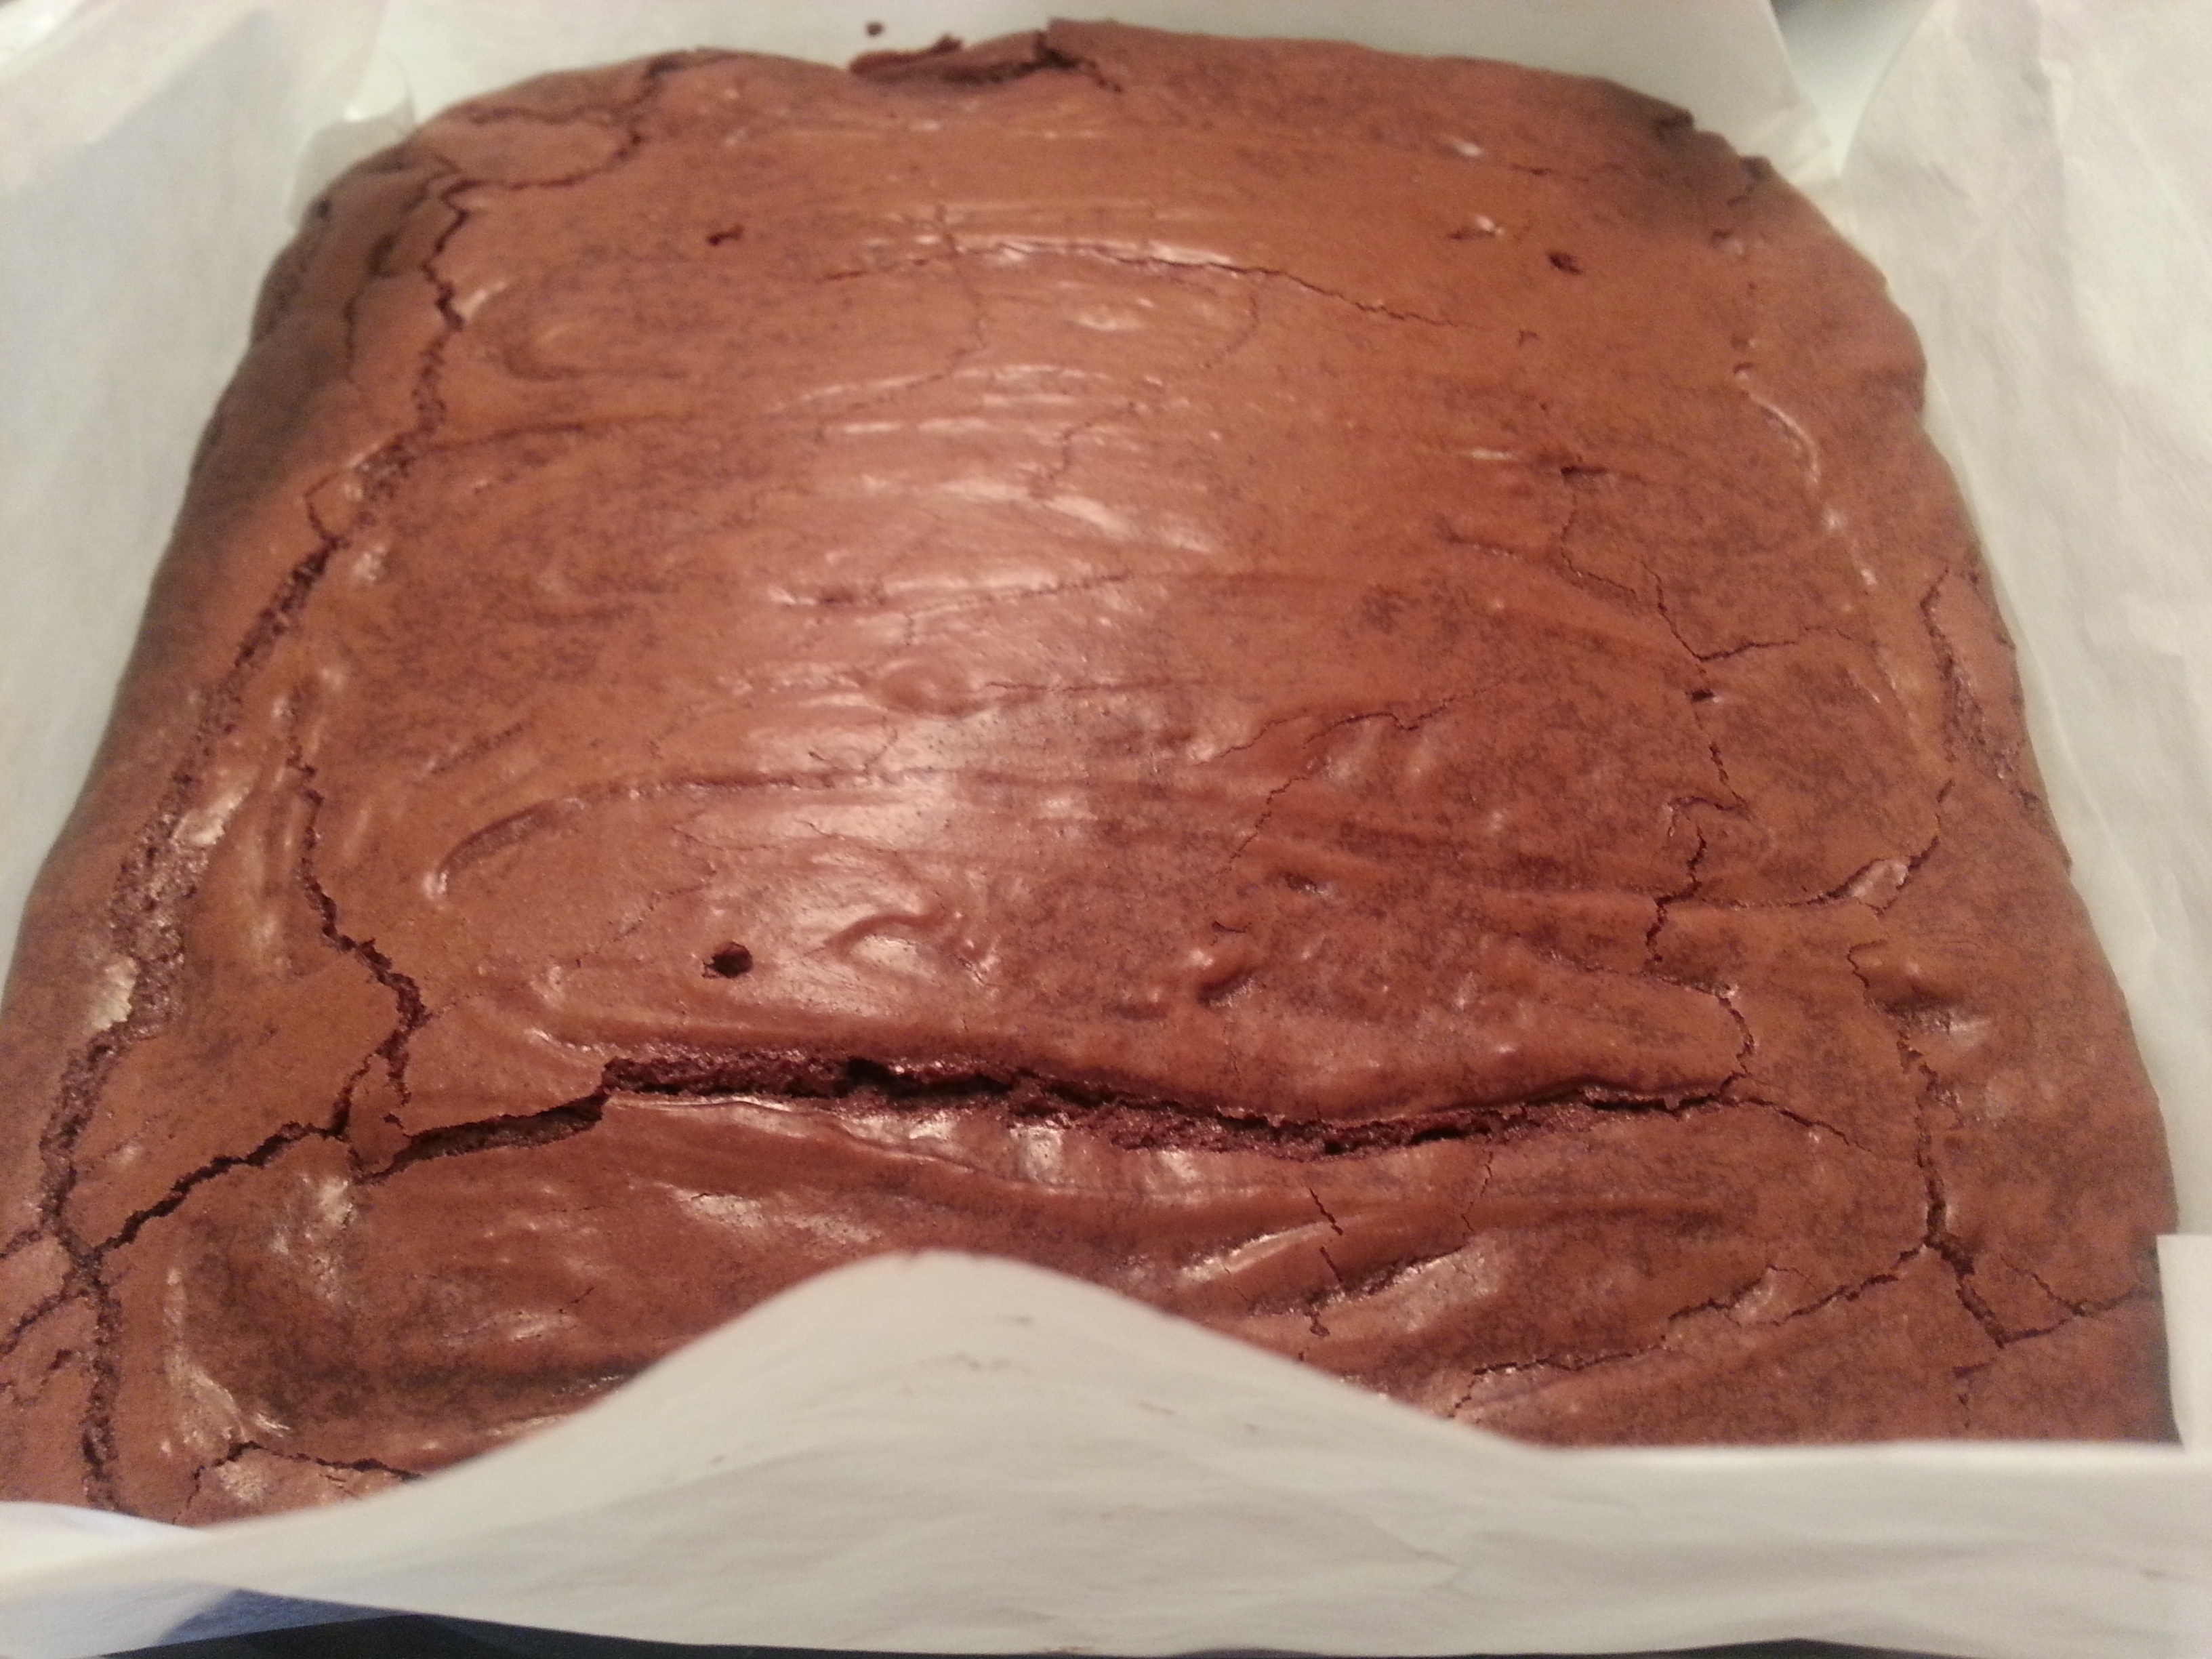 Chewy fudge brownies with crips tops and gooey centres